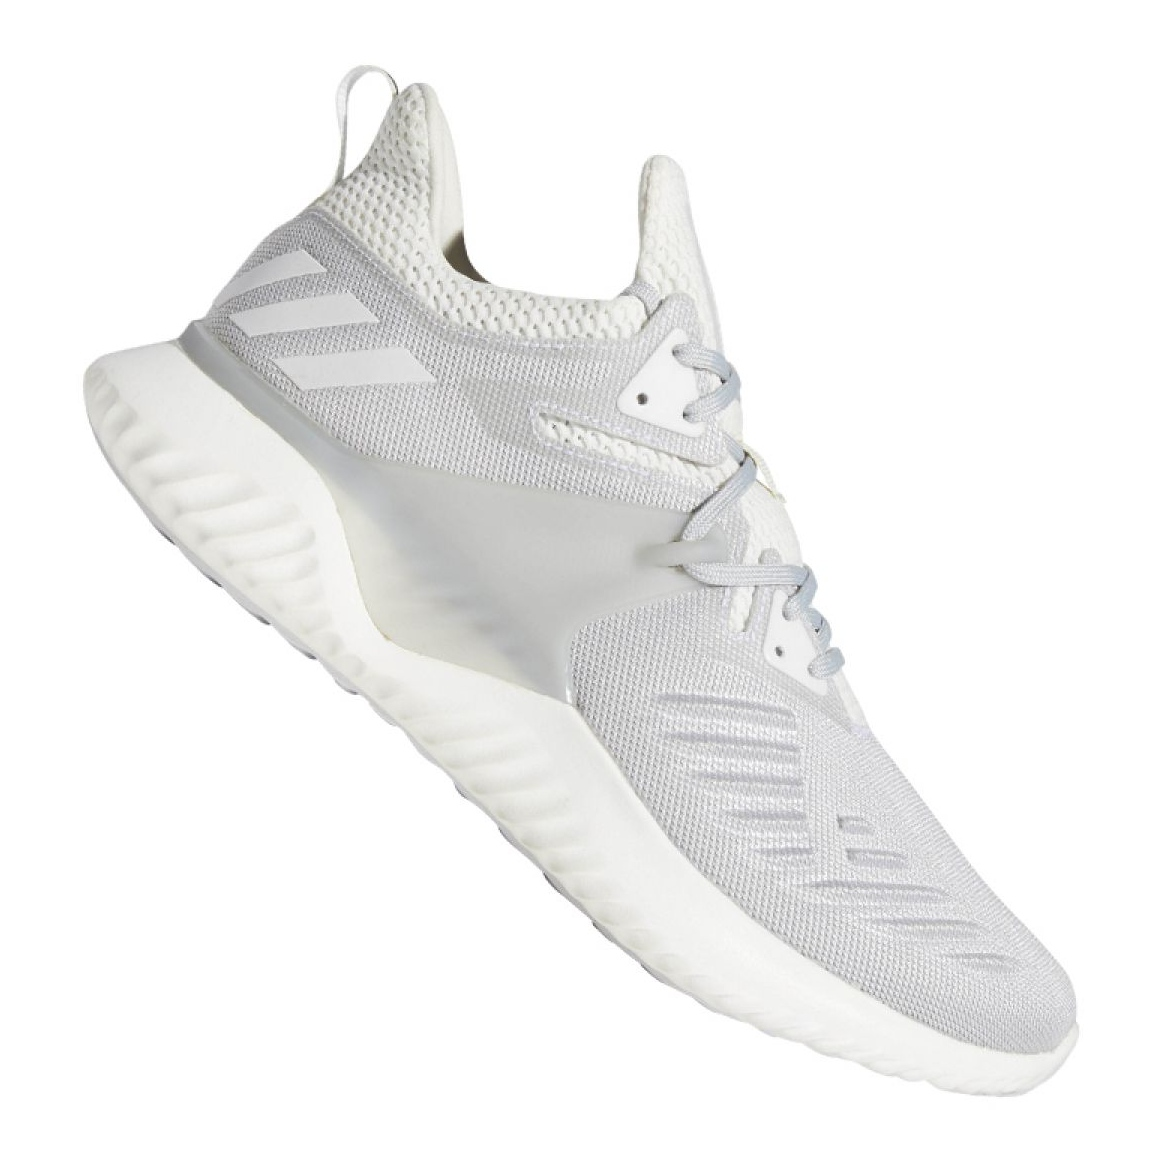 nouveaux styles 380d6 6f68d White Running shoes adidas Alphabounce Beyond M BD7095